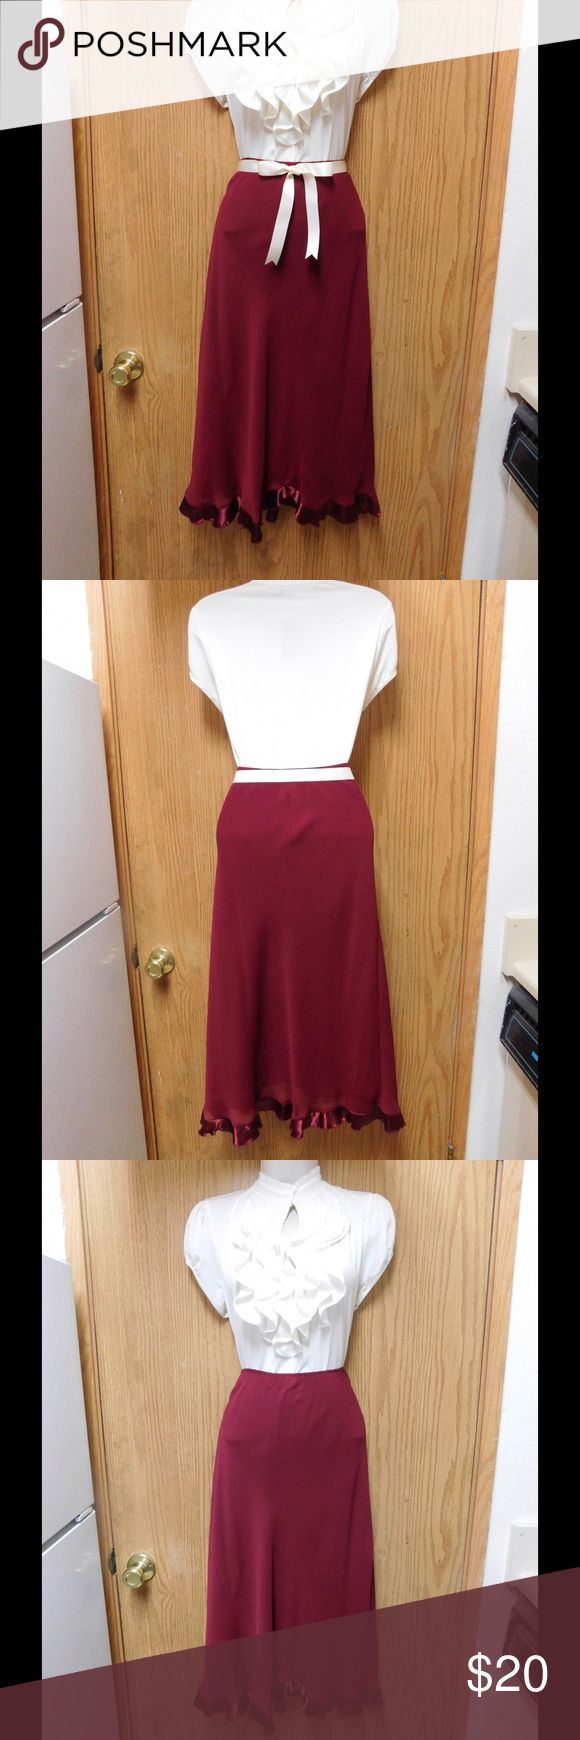 Chic Burgundy Maxi Skirt W/Lining &Belt-Waistband This skirt is really cute and adorable. Soft and comfy material. Belt included. Gorgeous color and exquisite design. Size Large 14 - Almost New. Save $$$ on bundles. Skirts Maxi